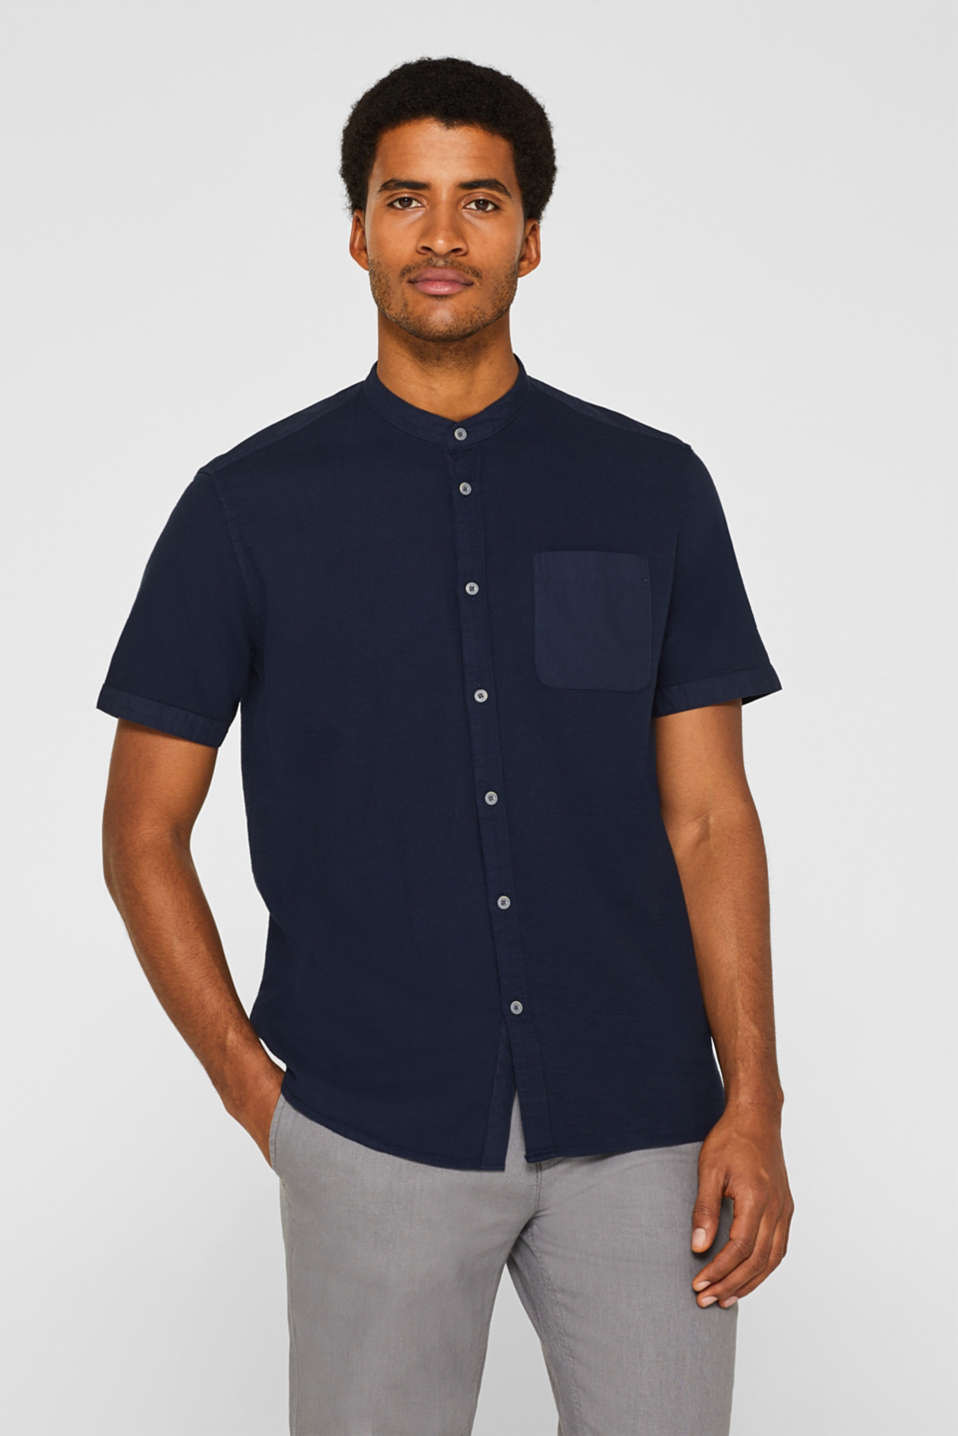 Short sleeve shirt with band collar, 100% cotton